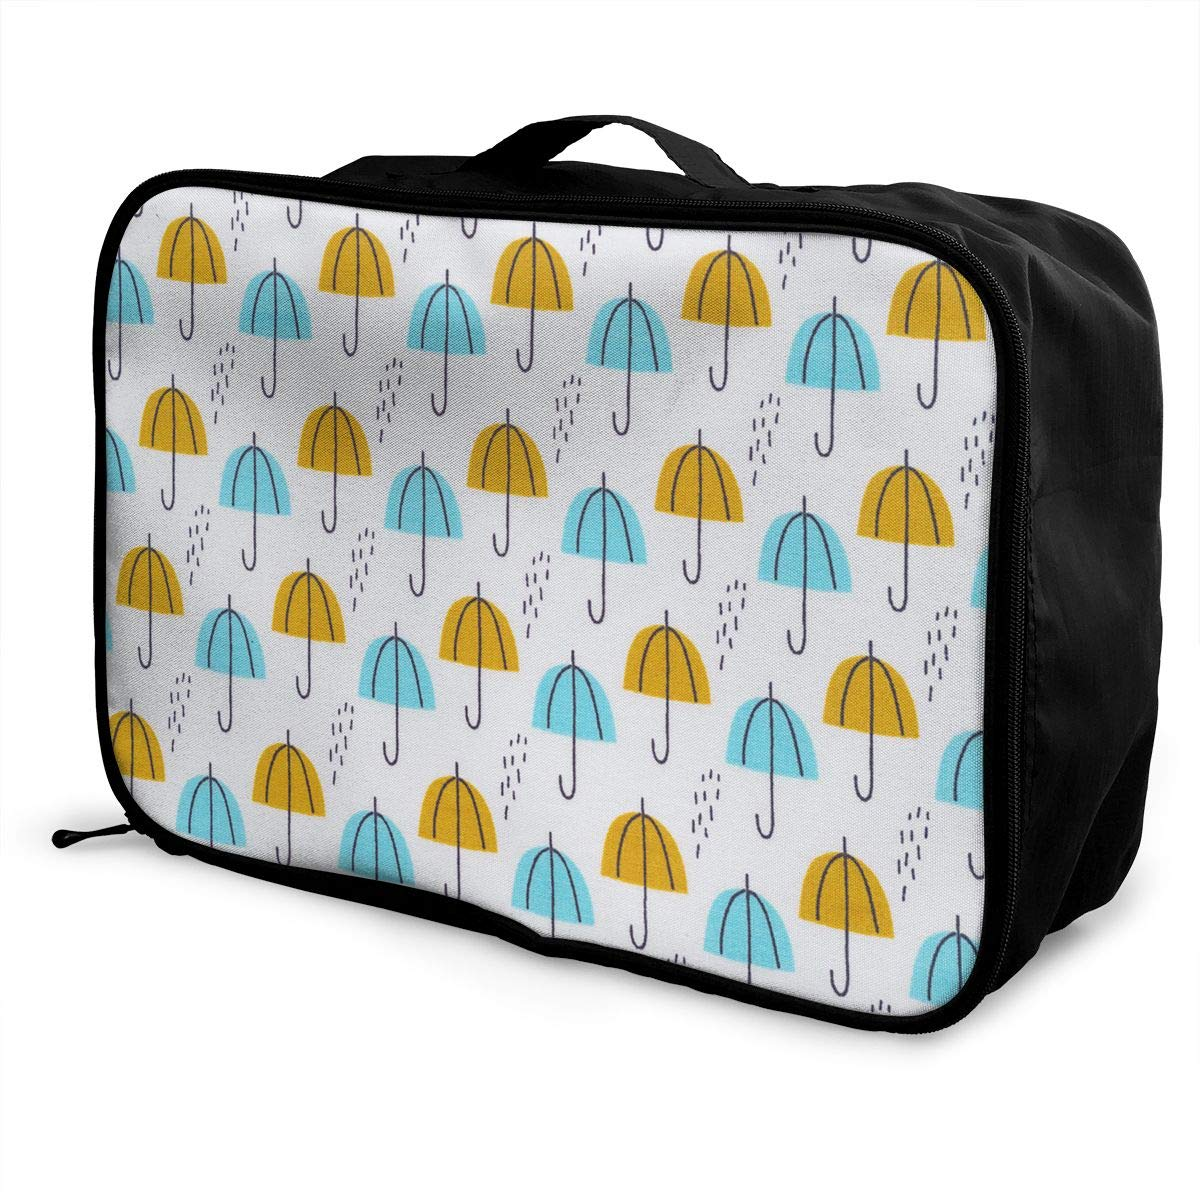 Travel Luggage Duffle Bag Lightweight Portable Handbag Umbrella Rain Print Large Capacity Waterproof Foldable Storage Tote